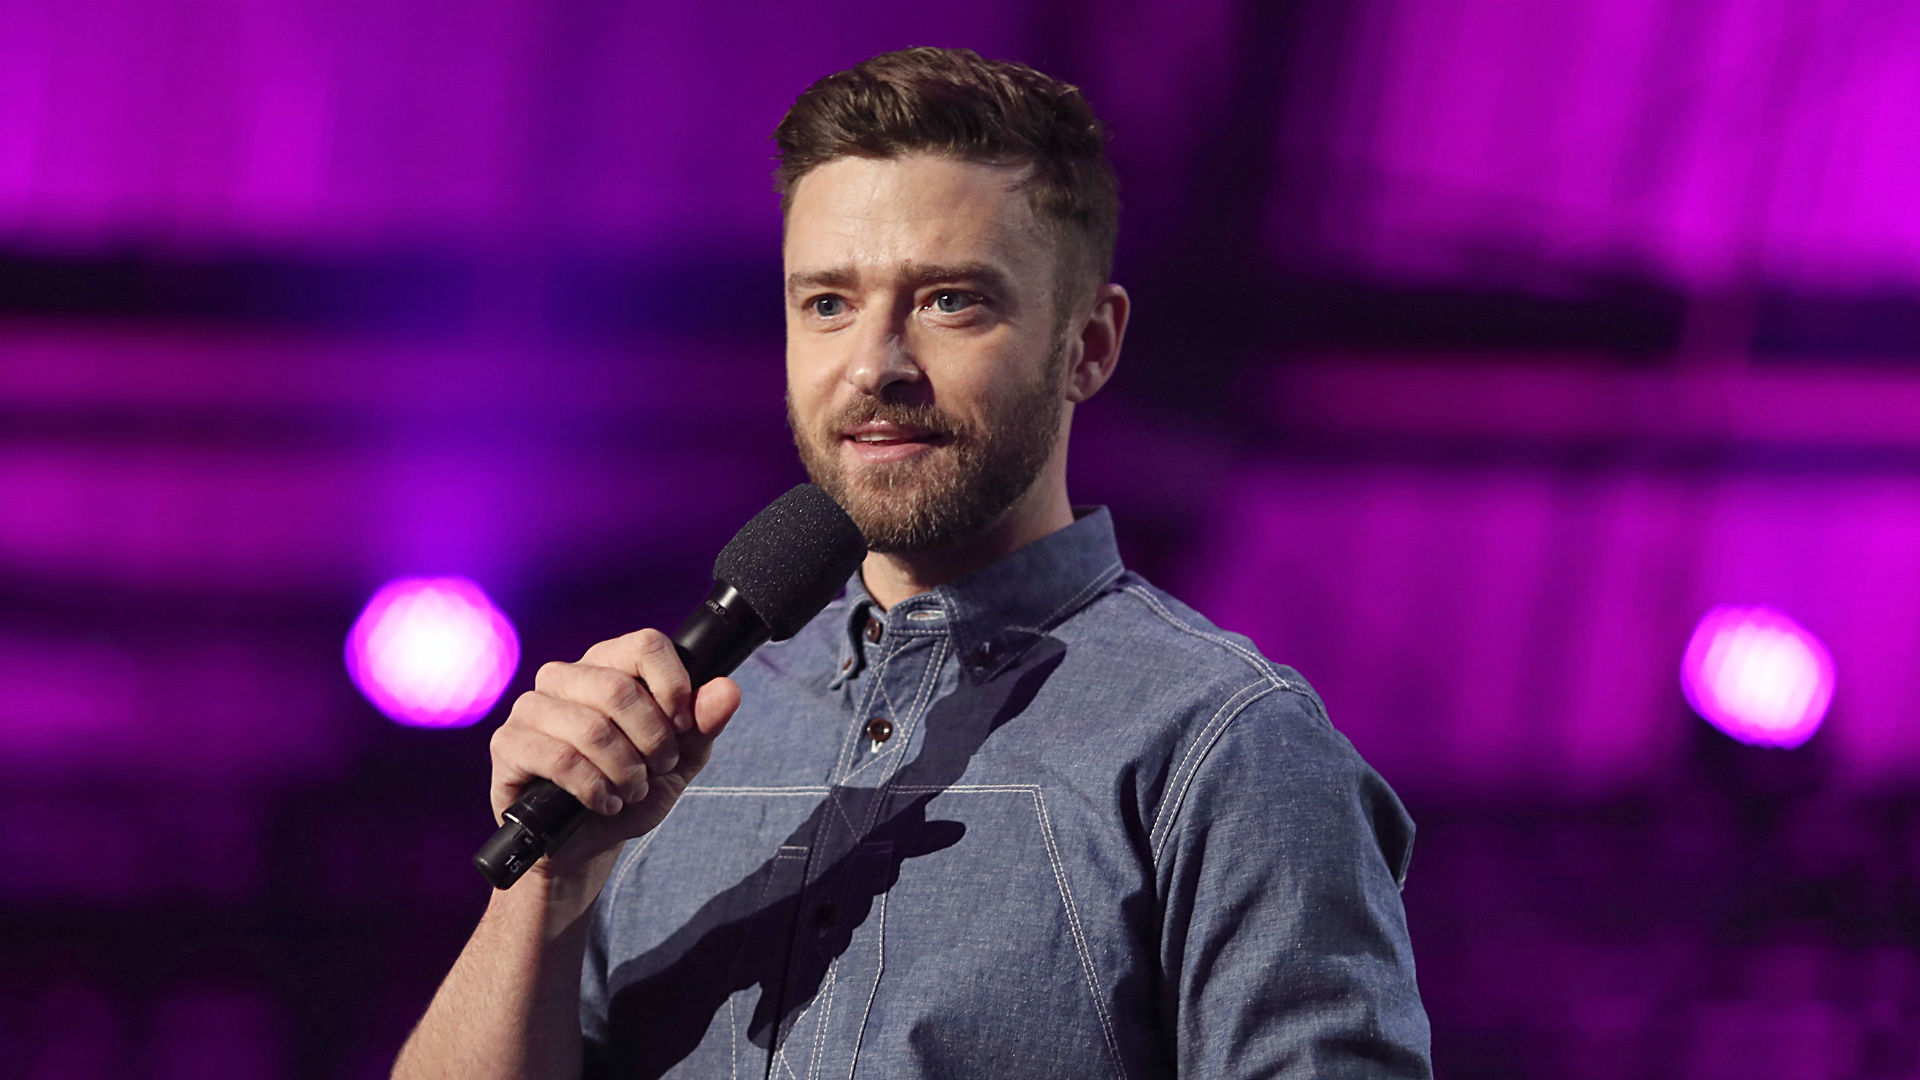 Justin Timberlake May Perform at Super Bowl Halftime Show 2018